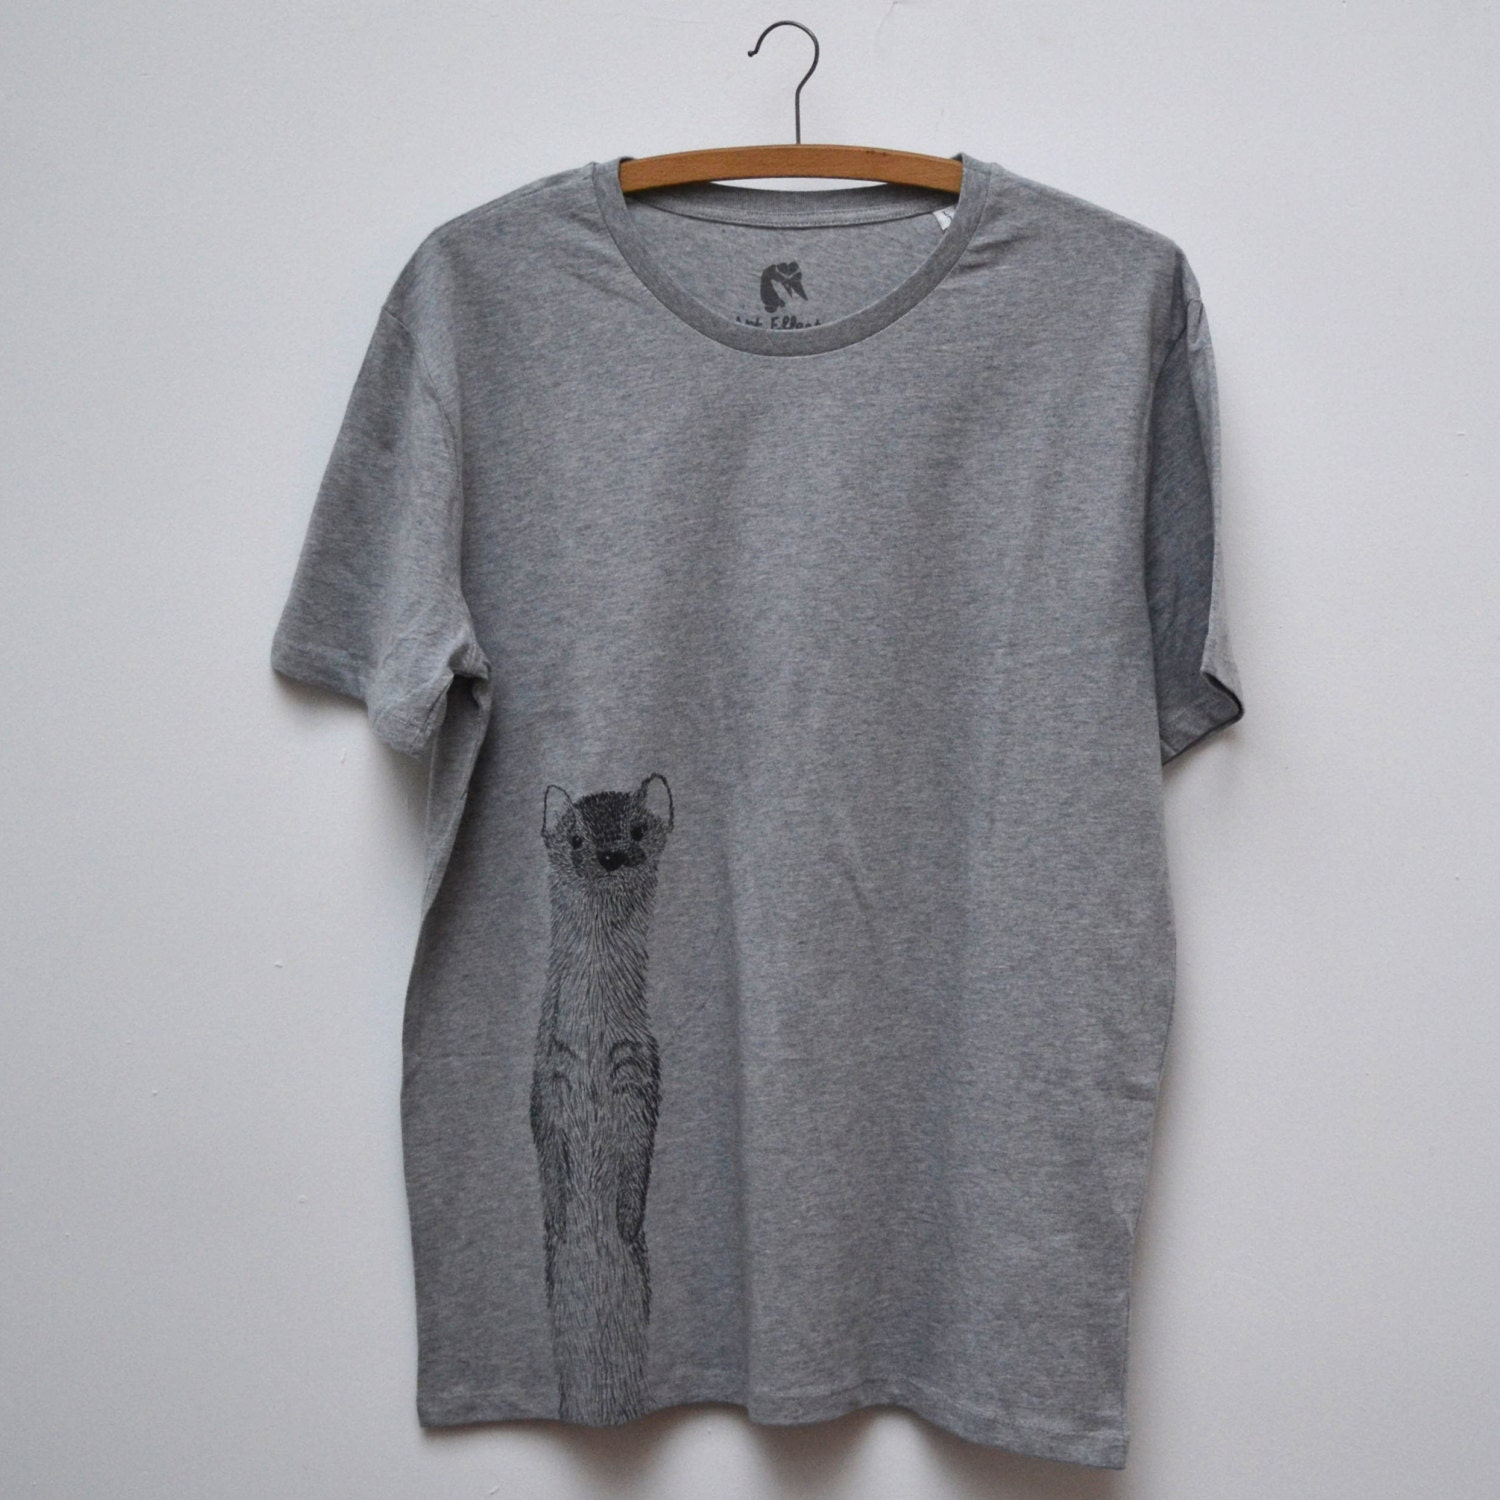 T-shirt for men with weasel print | Heather grey | 100% organic soft bio cotton | ArtEffectPrints - ArtEffectPrints